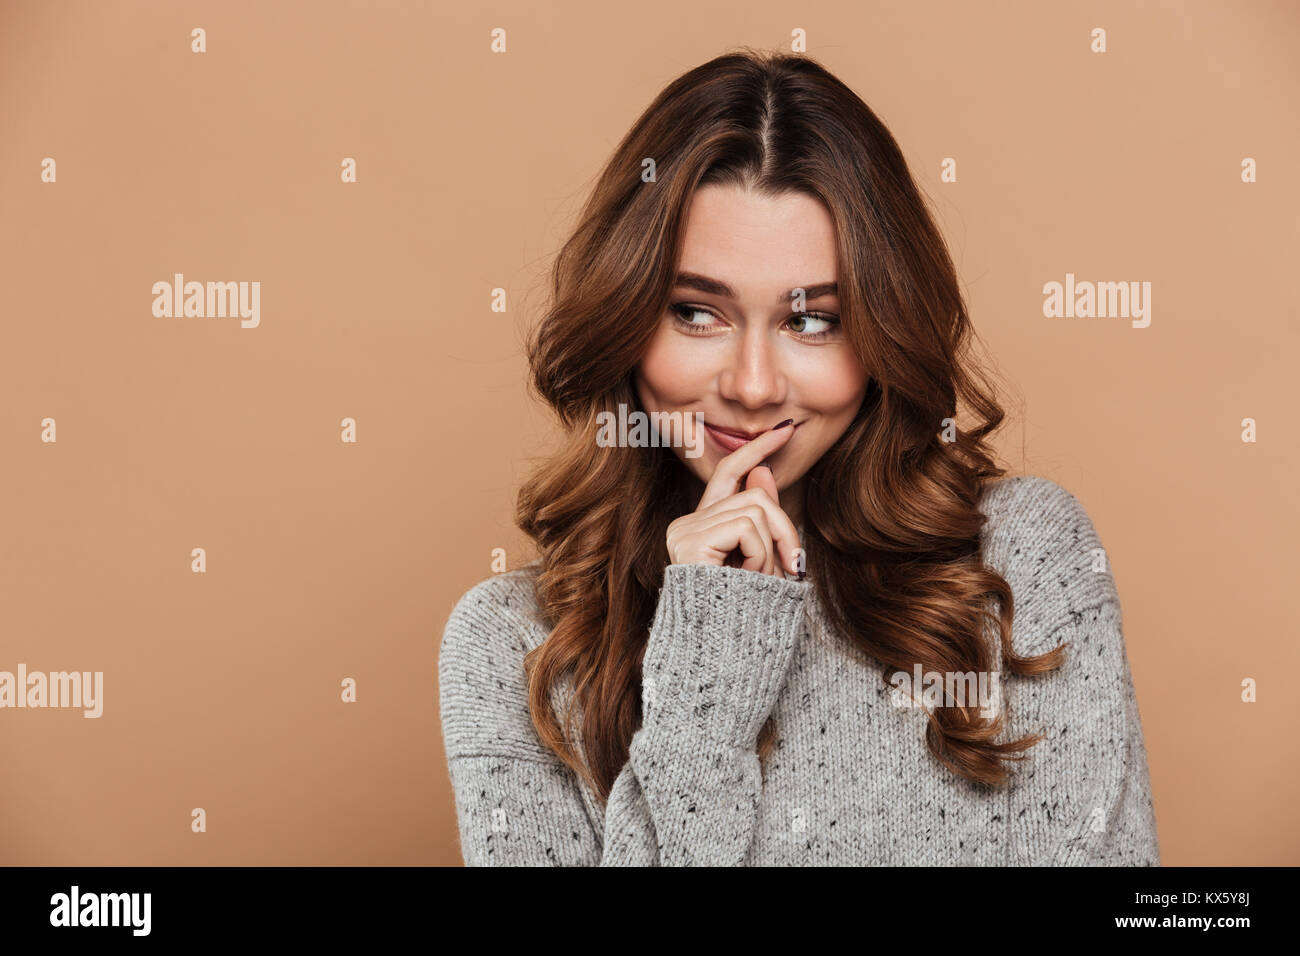 Shy Woman High Resolution Stock Photography And Images Alamy